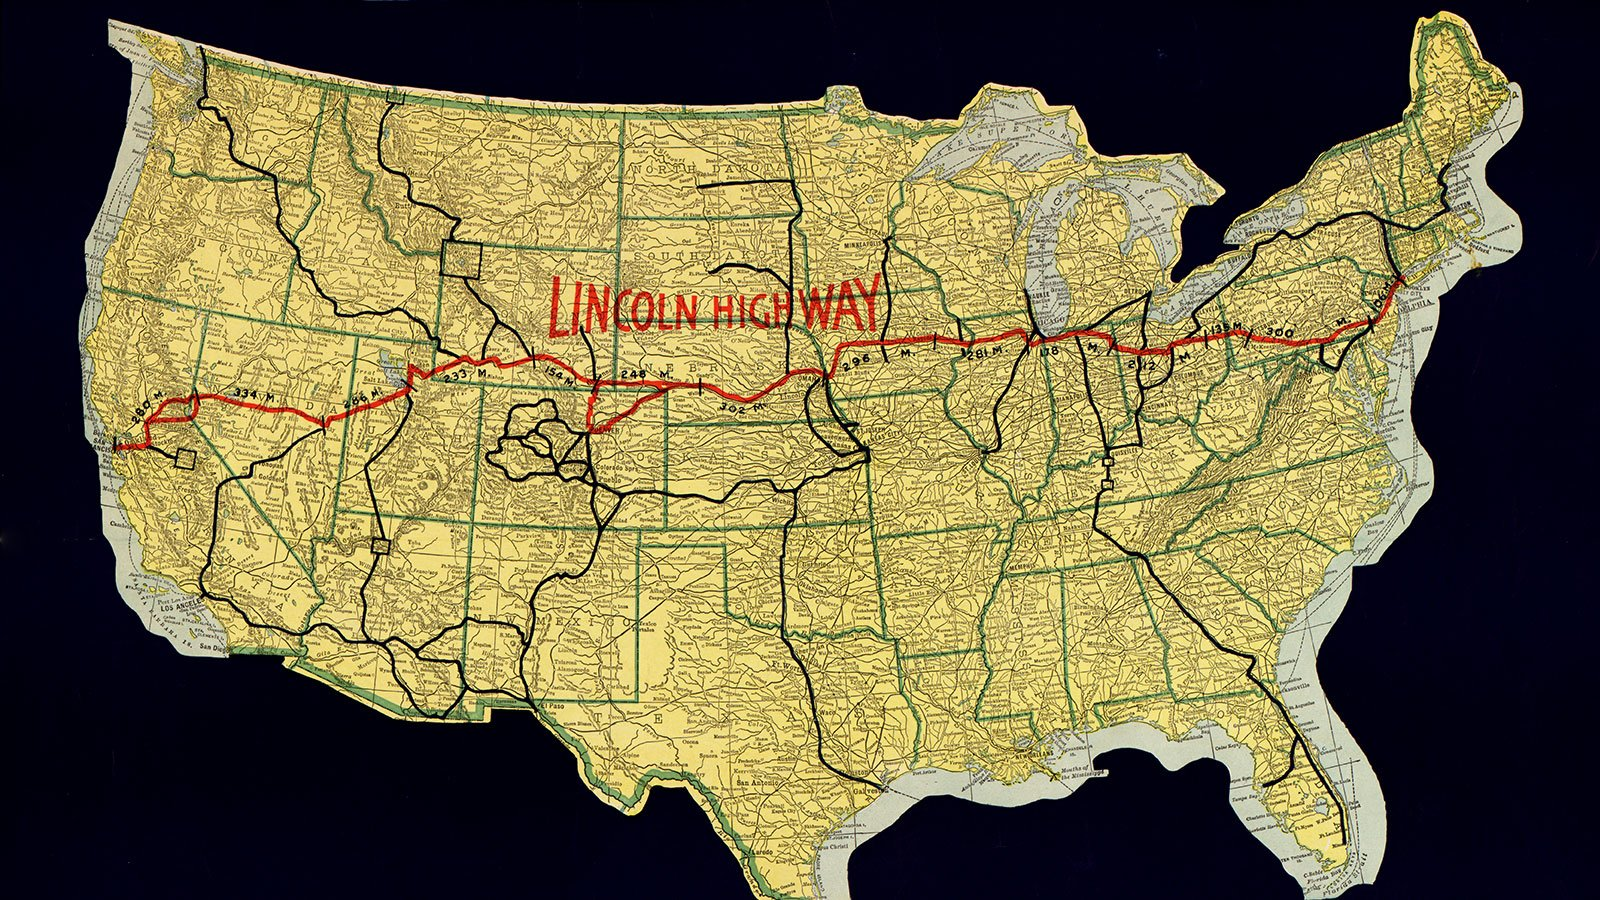 Lincoln Highway Route